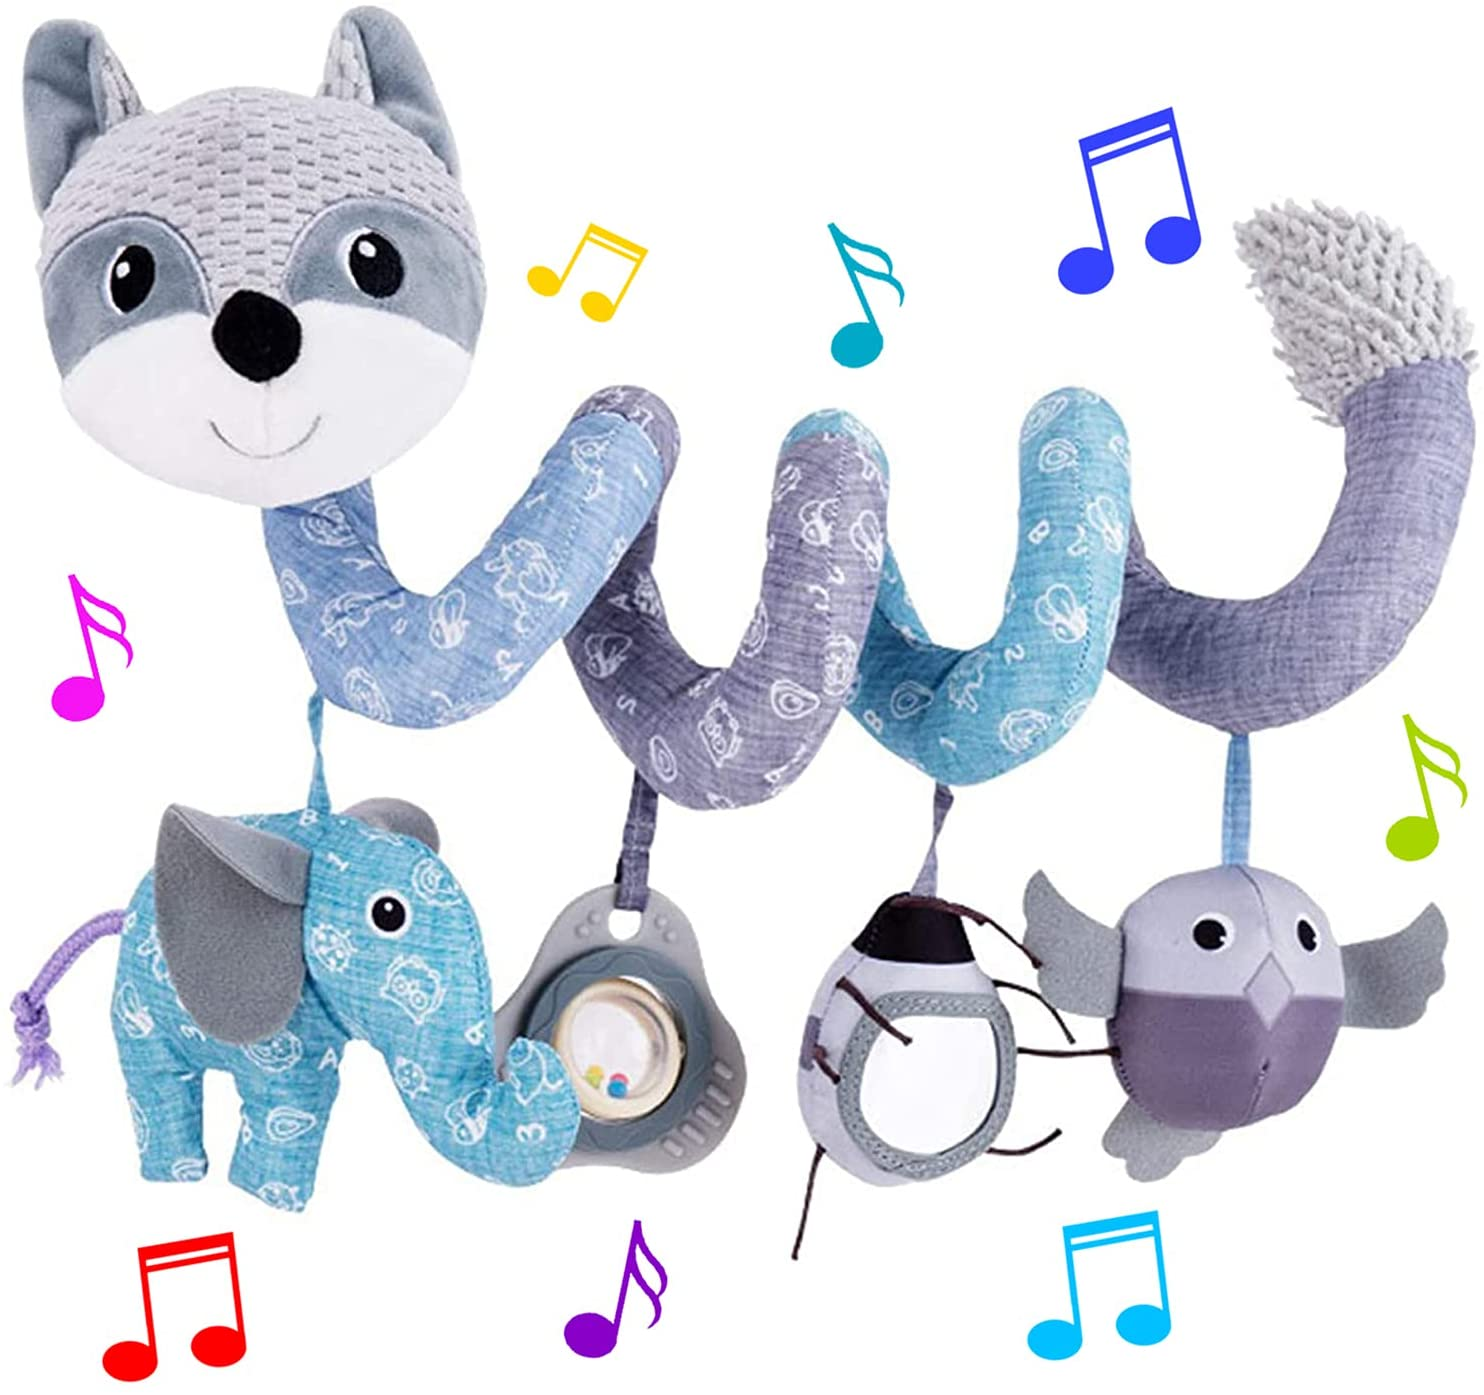 HILENBO Car Seat Toys, Infant Baby Gray Fox Spiral Plush Activity Hanging Toys for Car Seat Stroller Bar Crib Bassinet Mobile with Music Box BB Squeaker and Rattles(Gray)